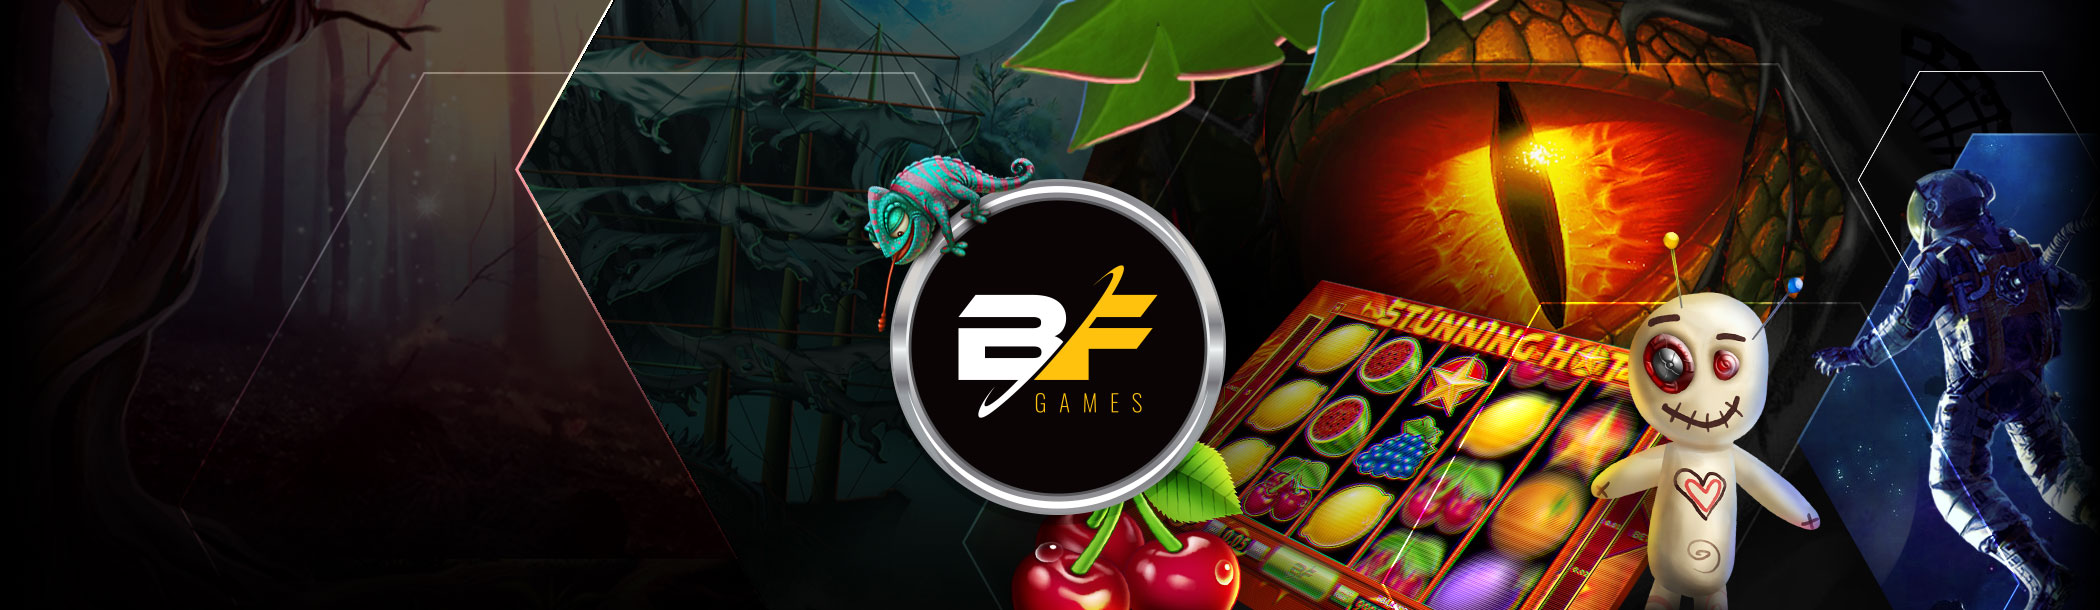 UK Players: Enjoy BF Games Slots at EnergyCasino Now